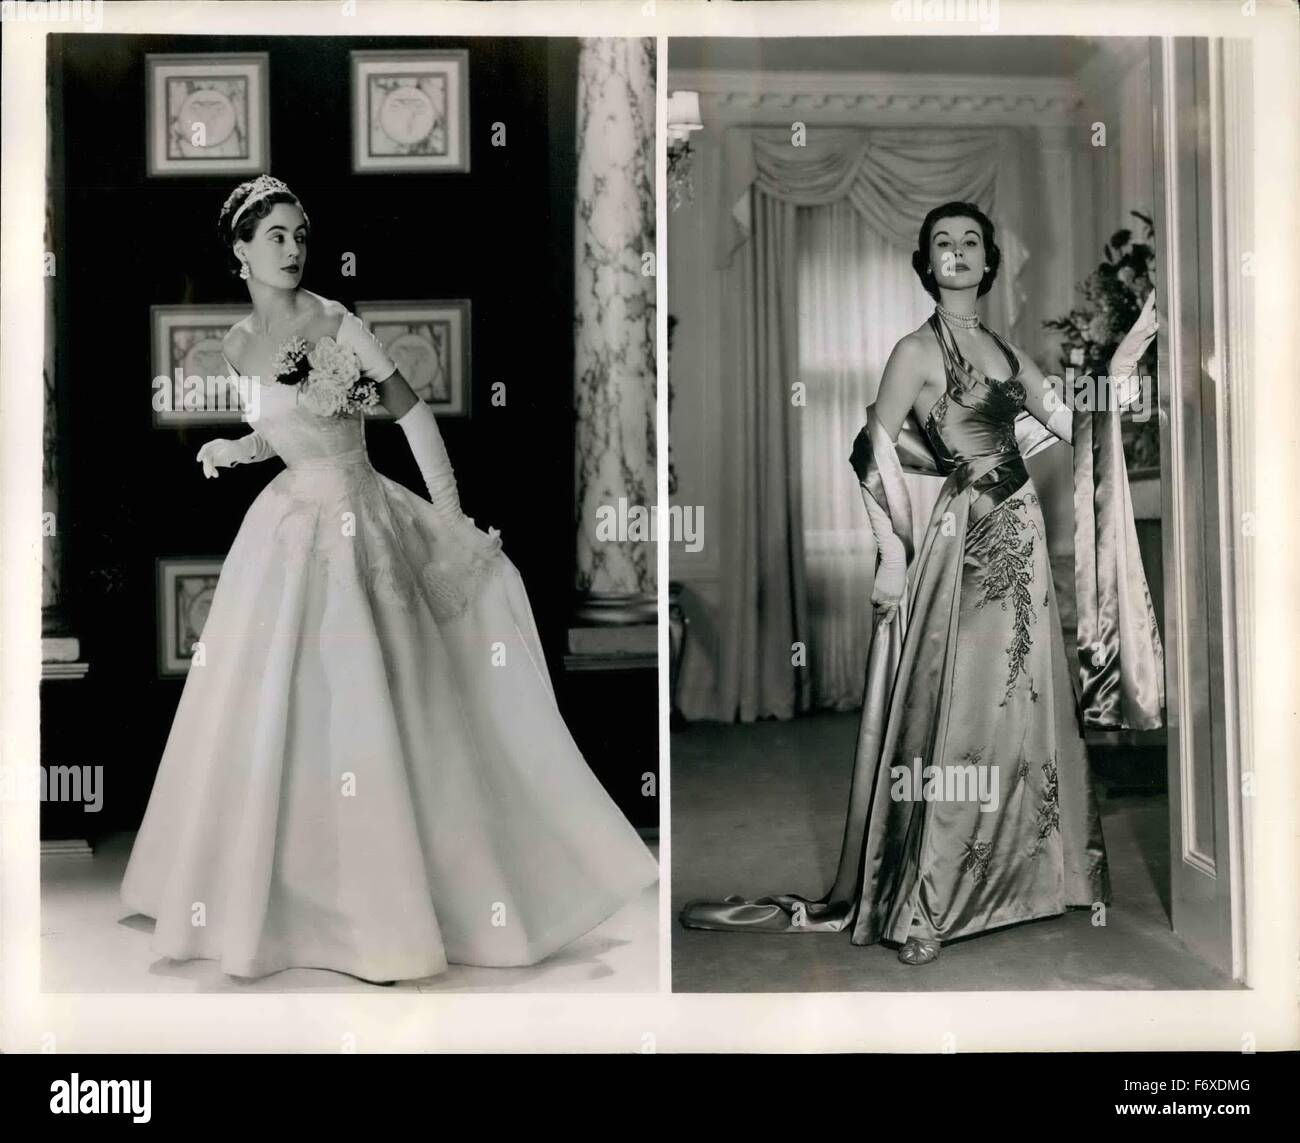 1962 - For The Corcnation Ceremony And After These evening gowns are ...